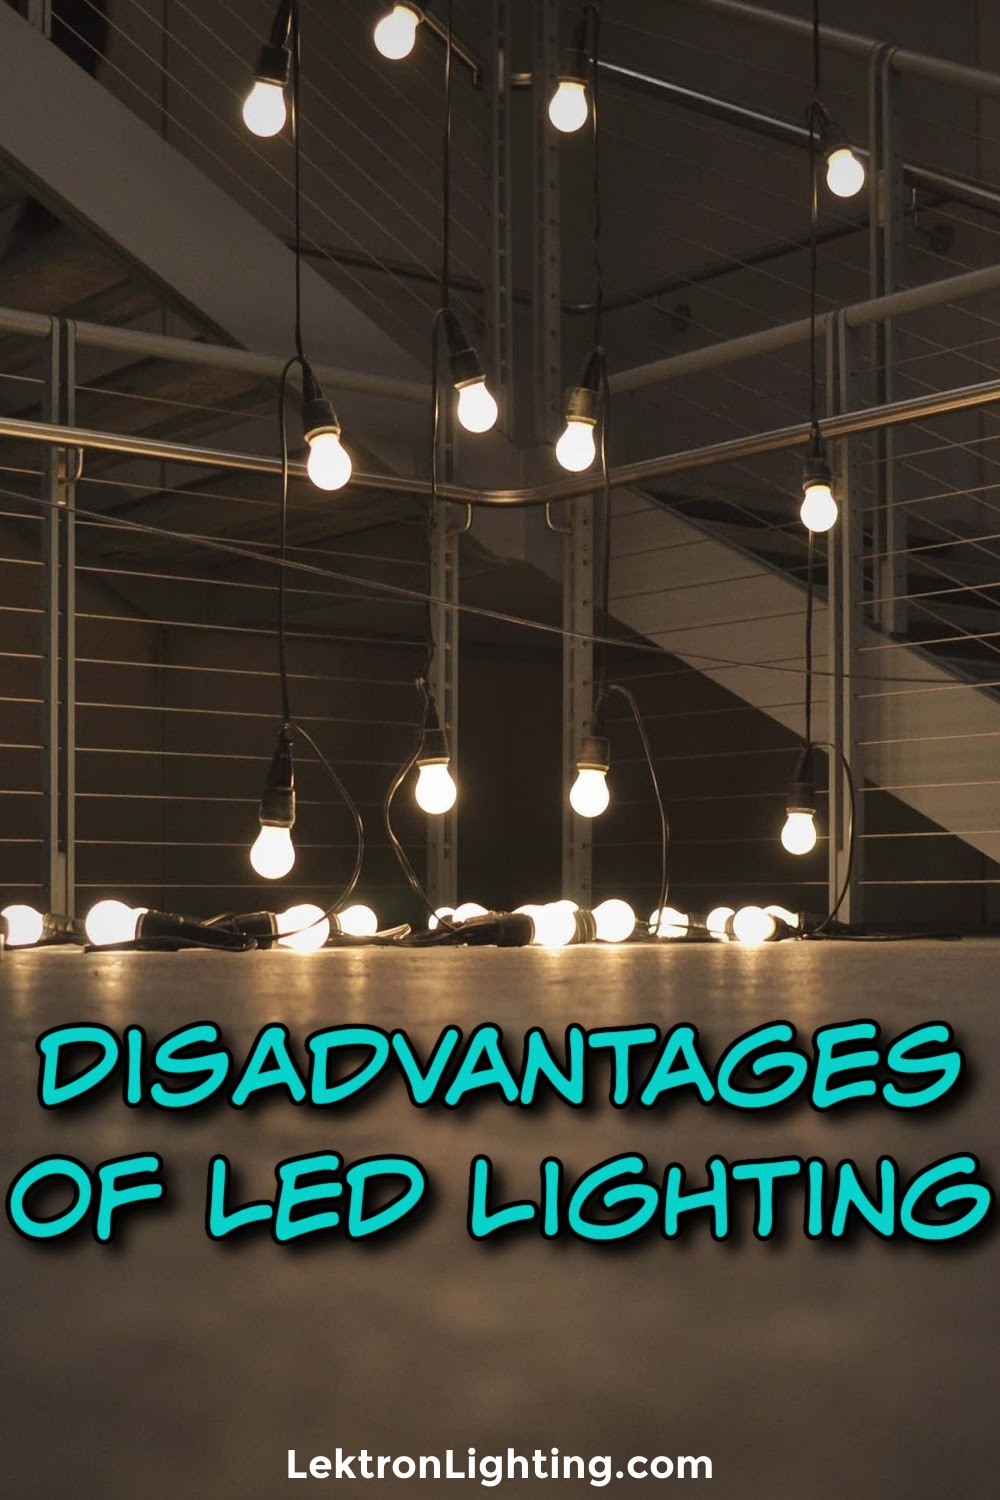 LEDs can't always be the perfect solution, so what are the disadvantages of LEDs at work or at home?